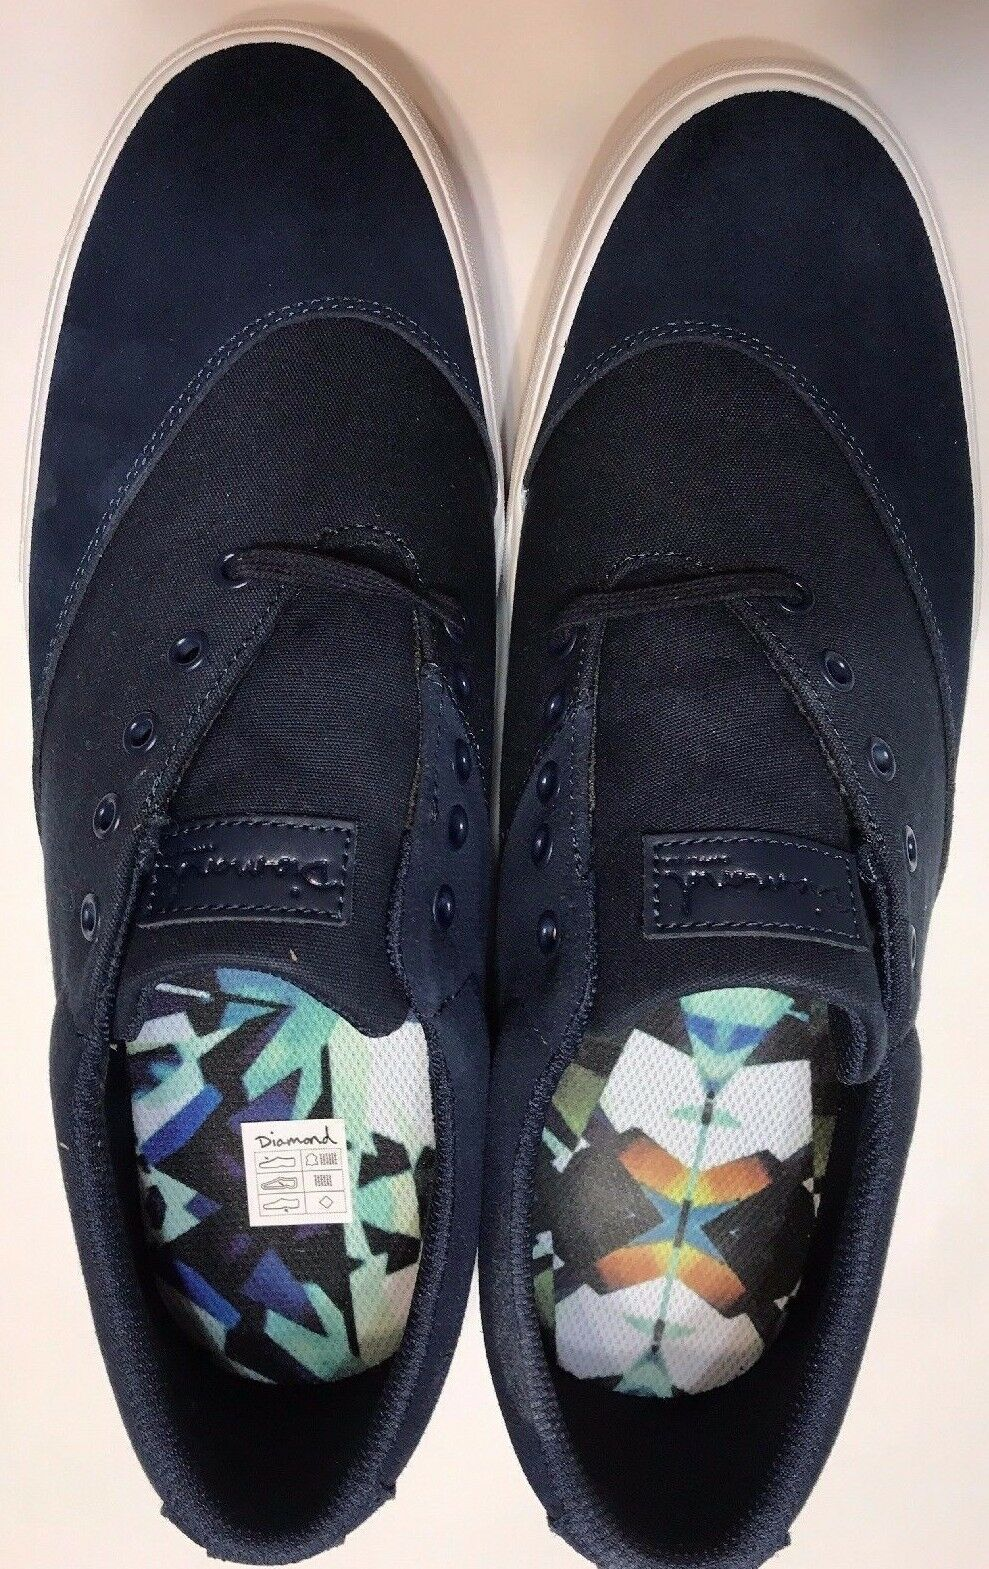 Men's Shoes Diamond Supply Co Avenue Skateboard Sneaker Canvas Navy Blue Size 12